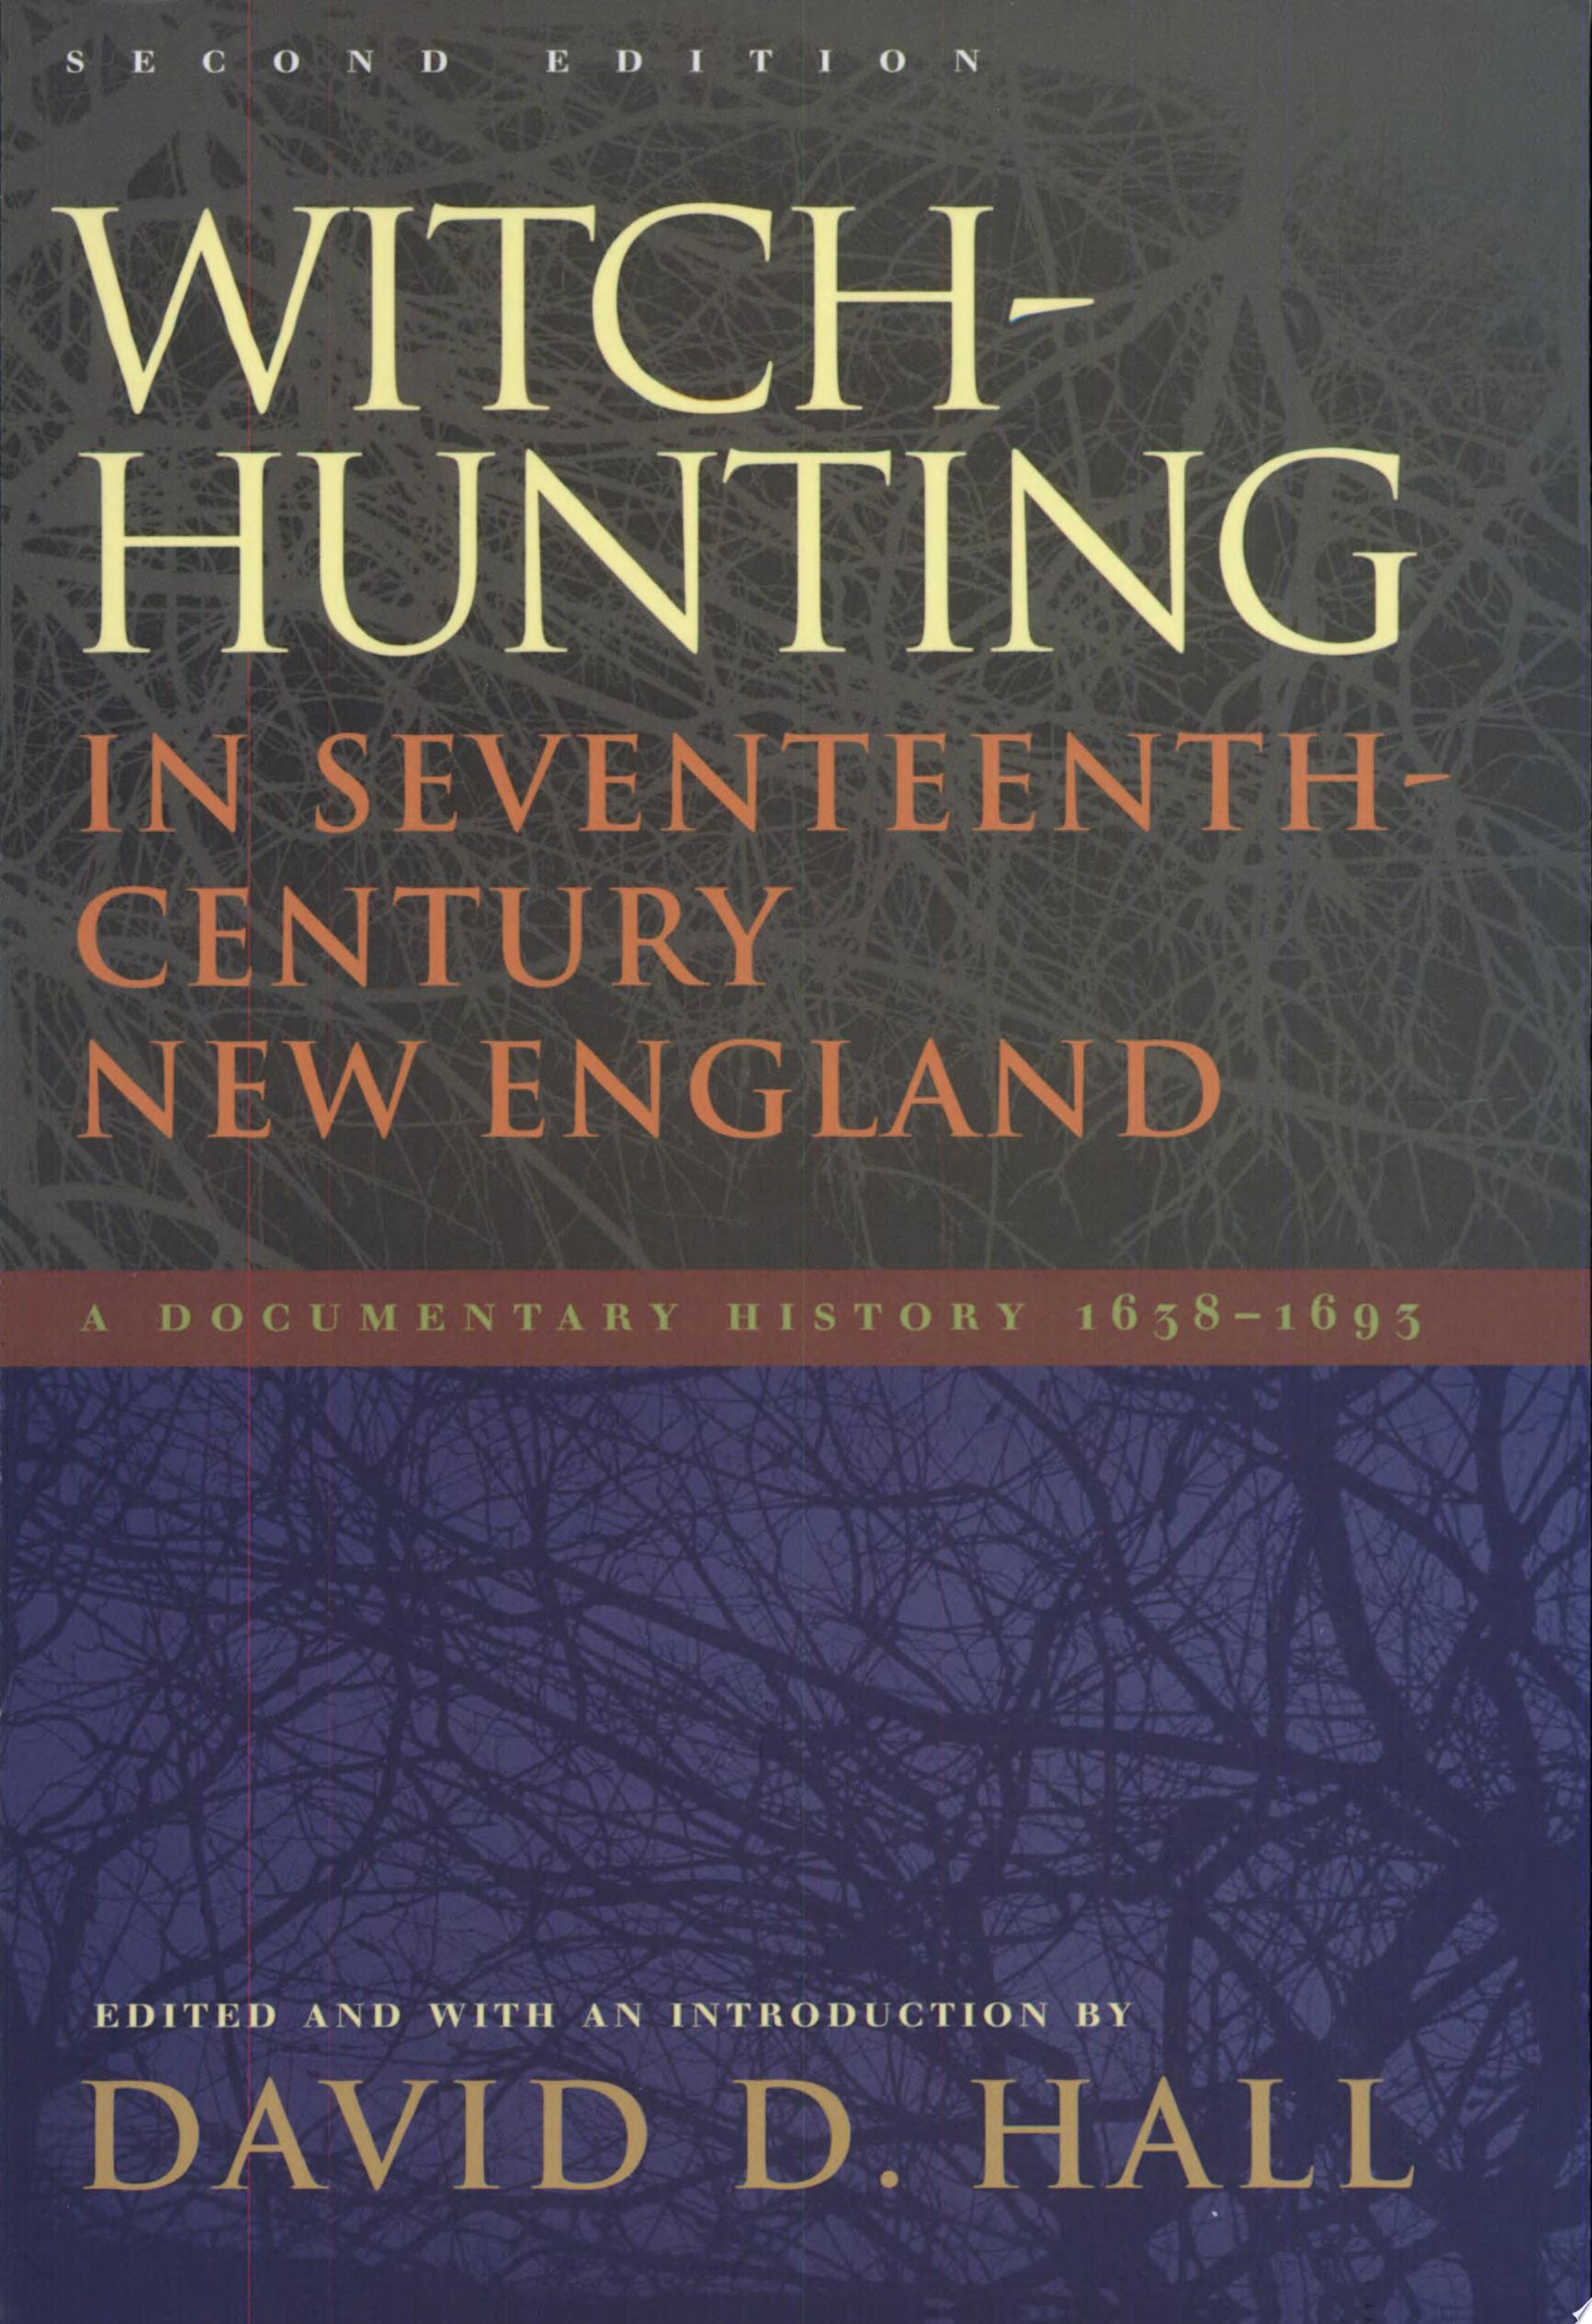 Witch Hunting in Seventeenth Century New England